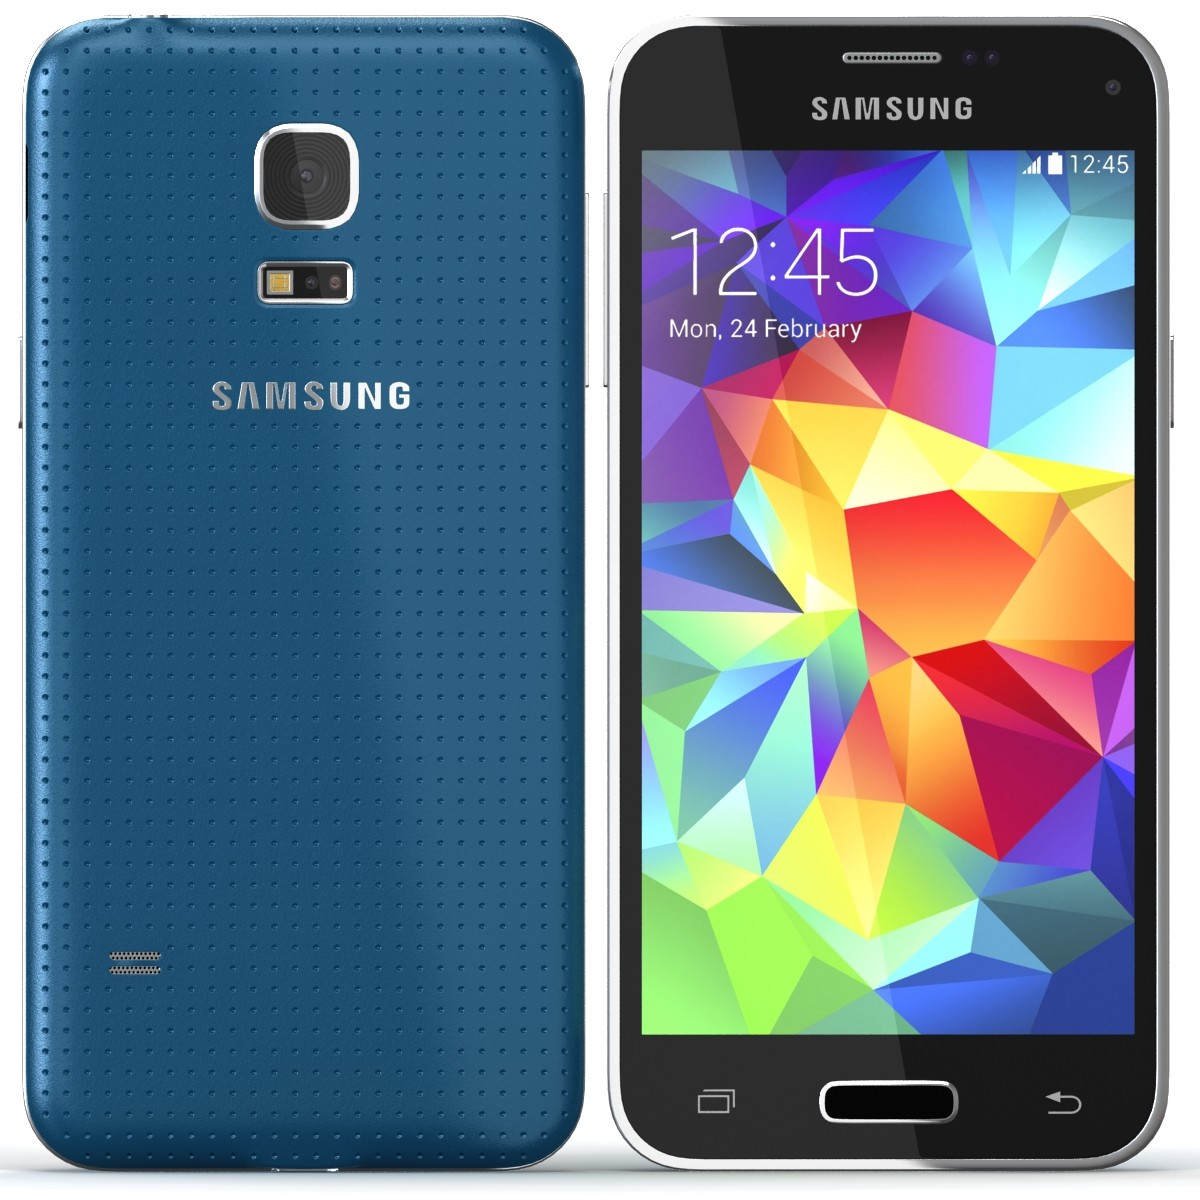 Download COMBINATION file SAMSUNG Galaxy S5 mini SM-G800YD build number G800YDVU1ANG2